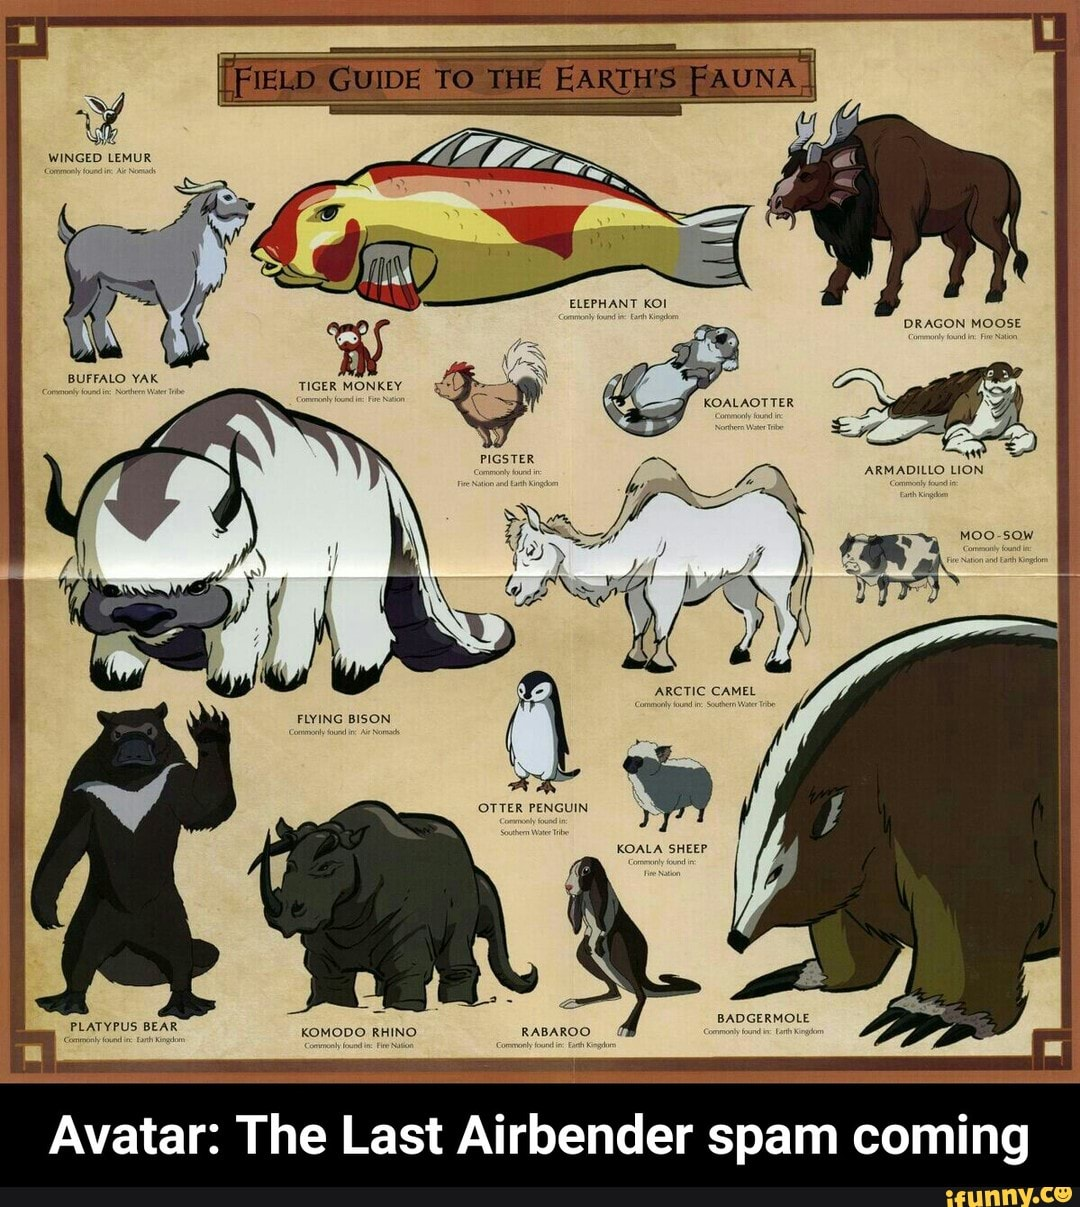 Avatar: The Last Airbender spam coming - iFunny :)